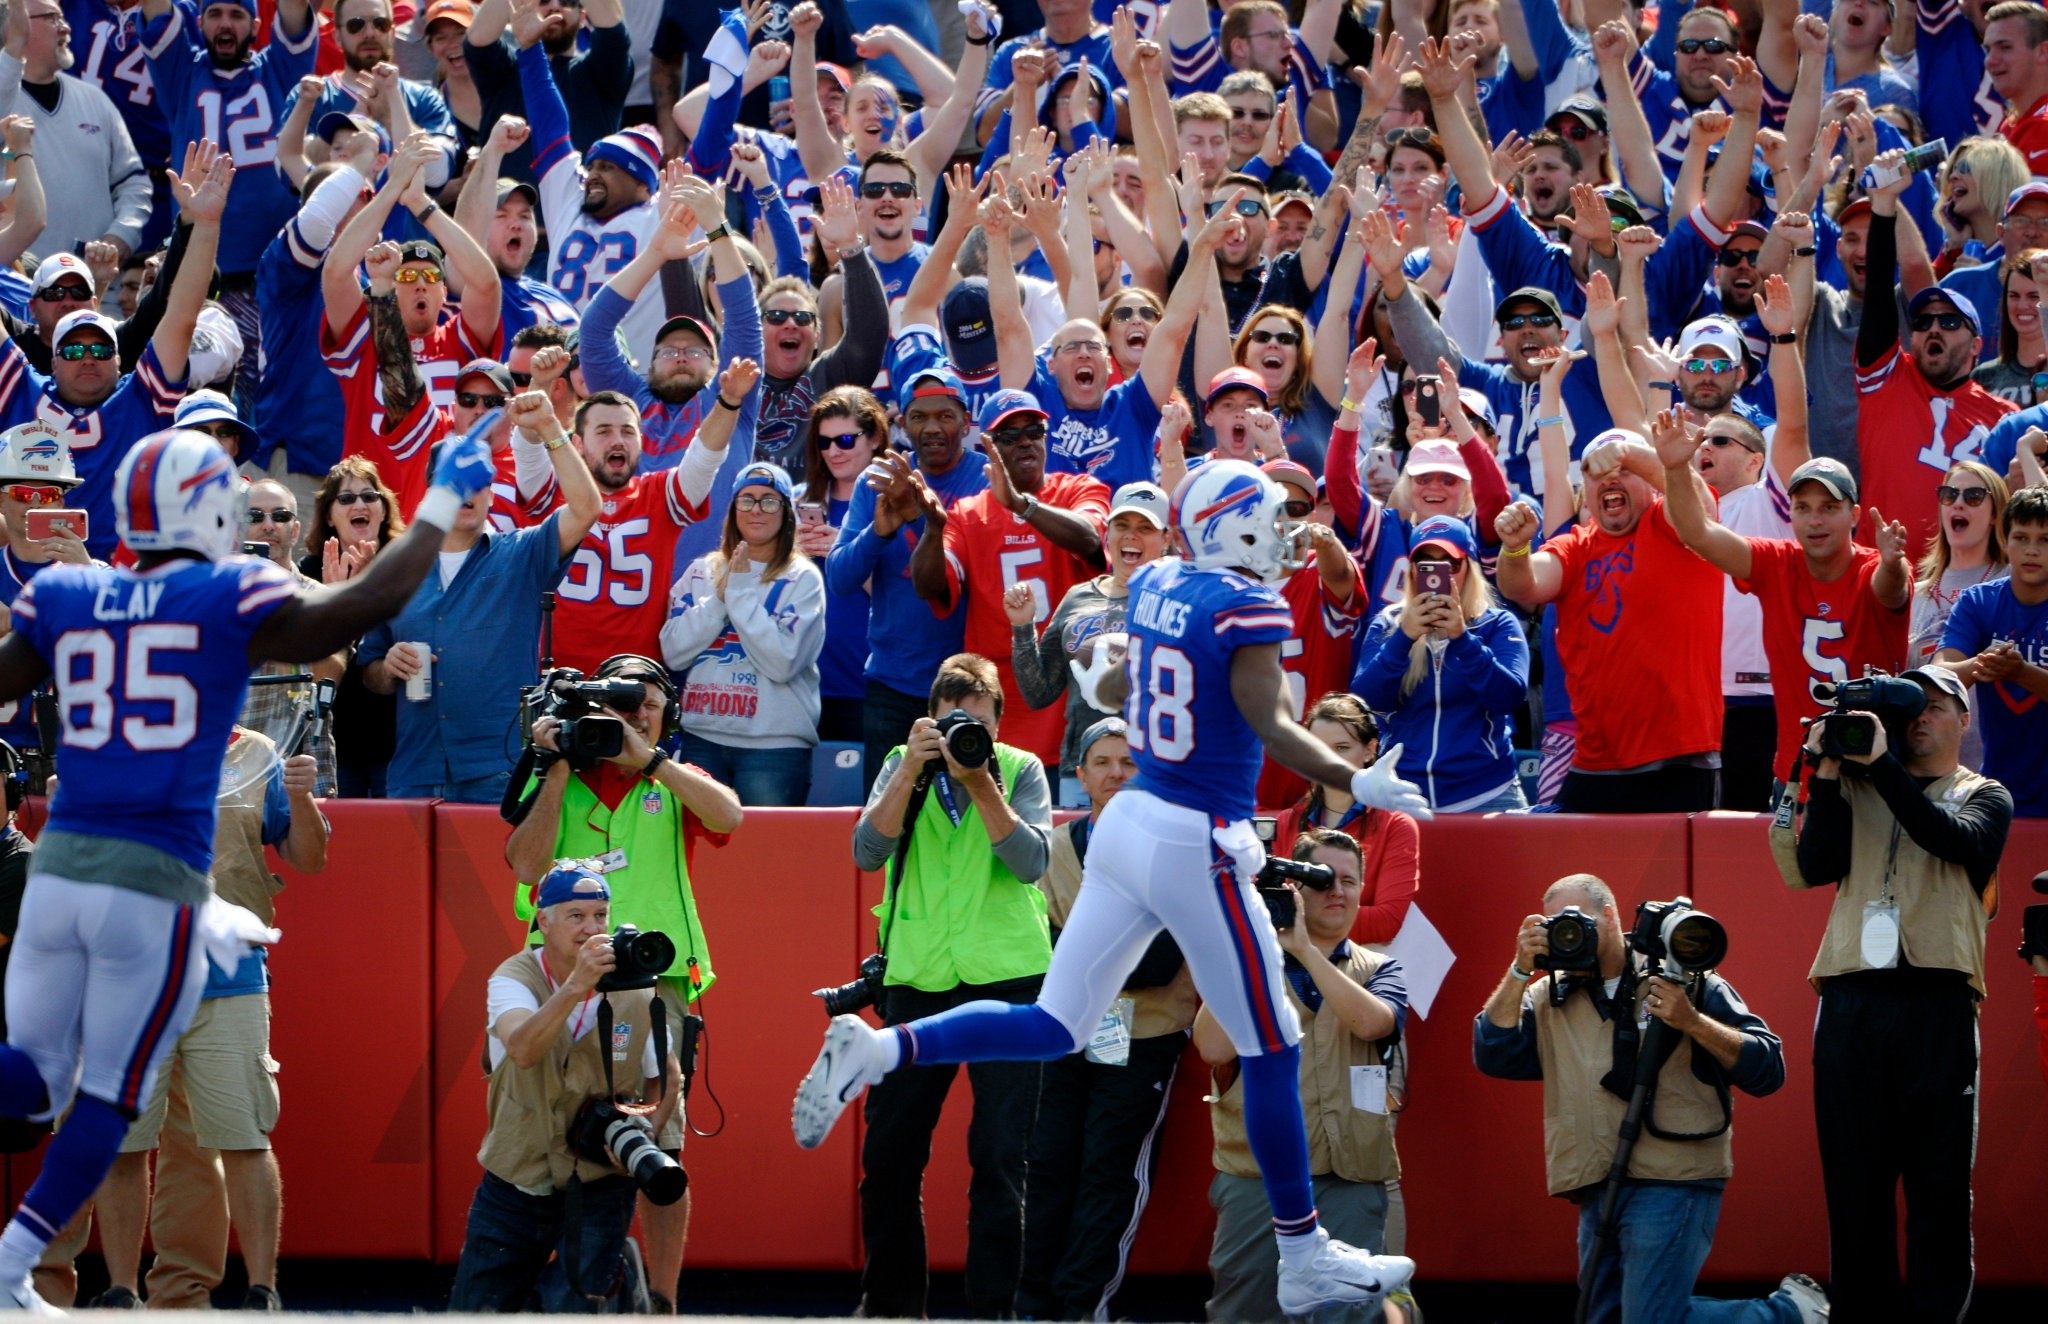 The best welcome to the endzone. #GoBills  Top photos from the win: https://t.co/td4zvhhBZz https://t.co/Td1PEa0x4p